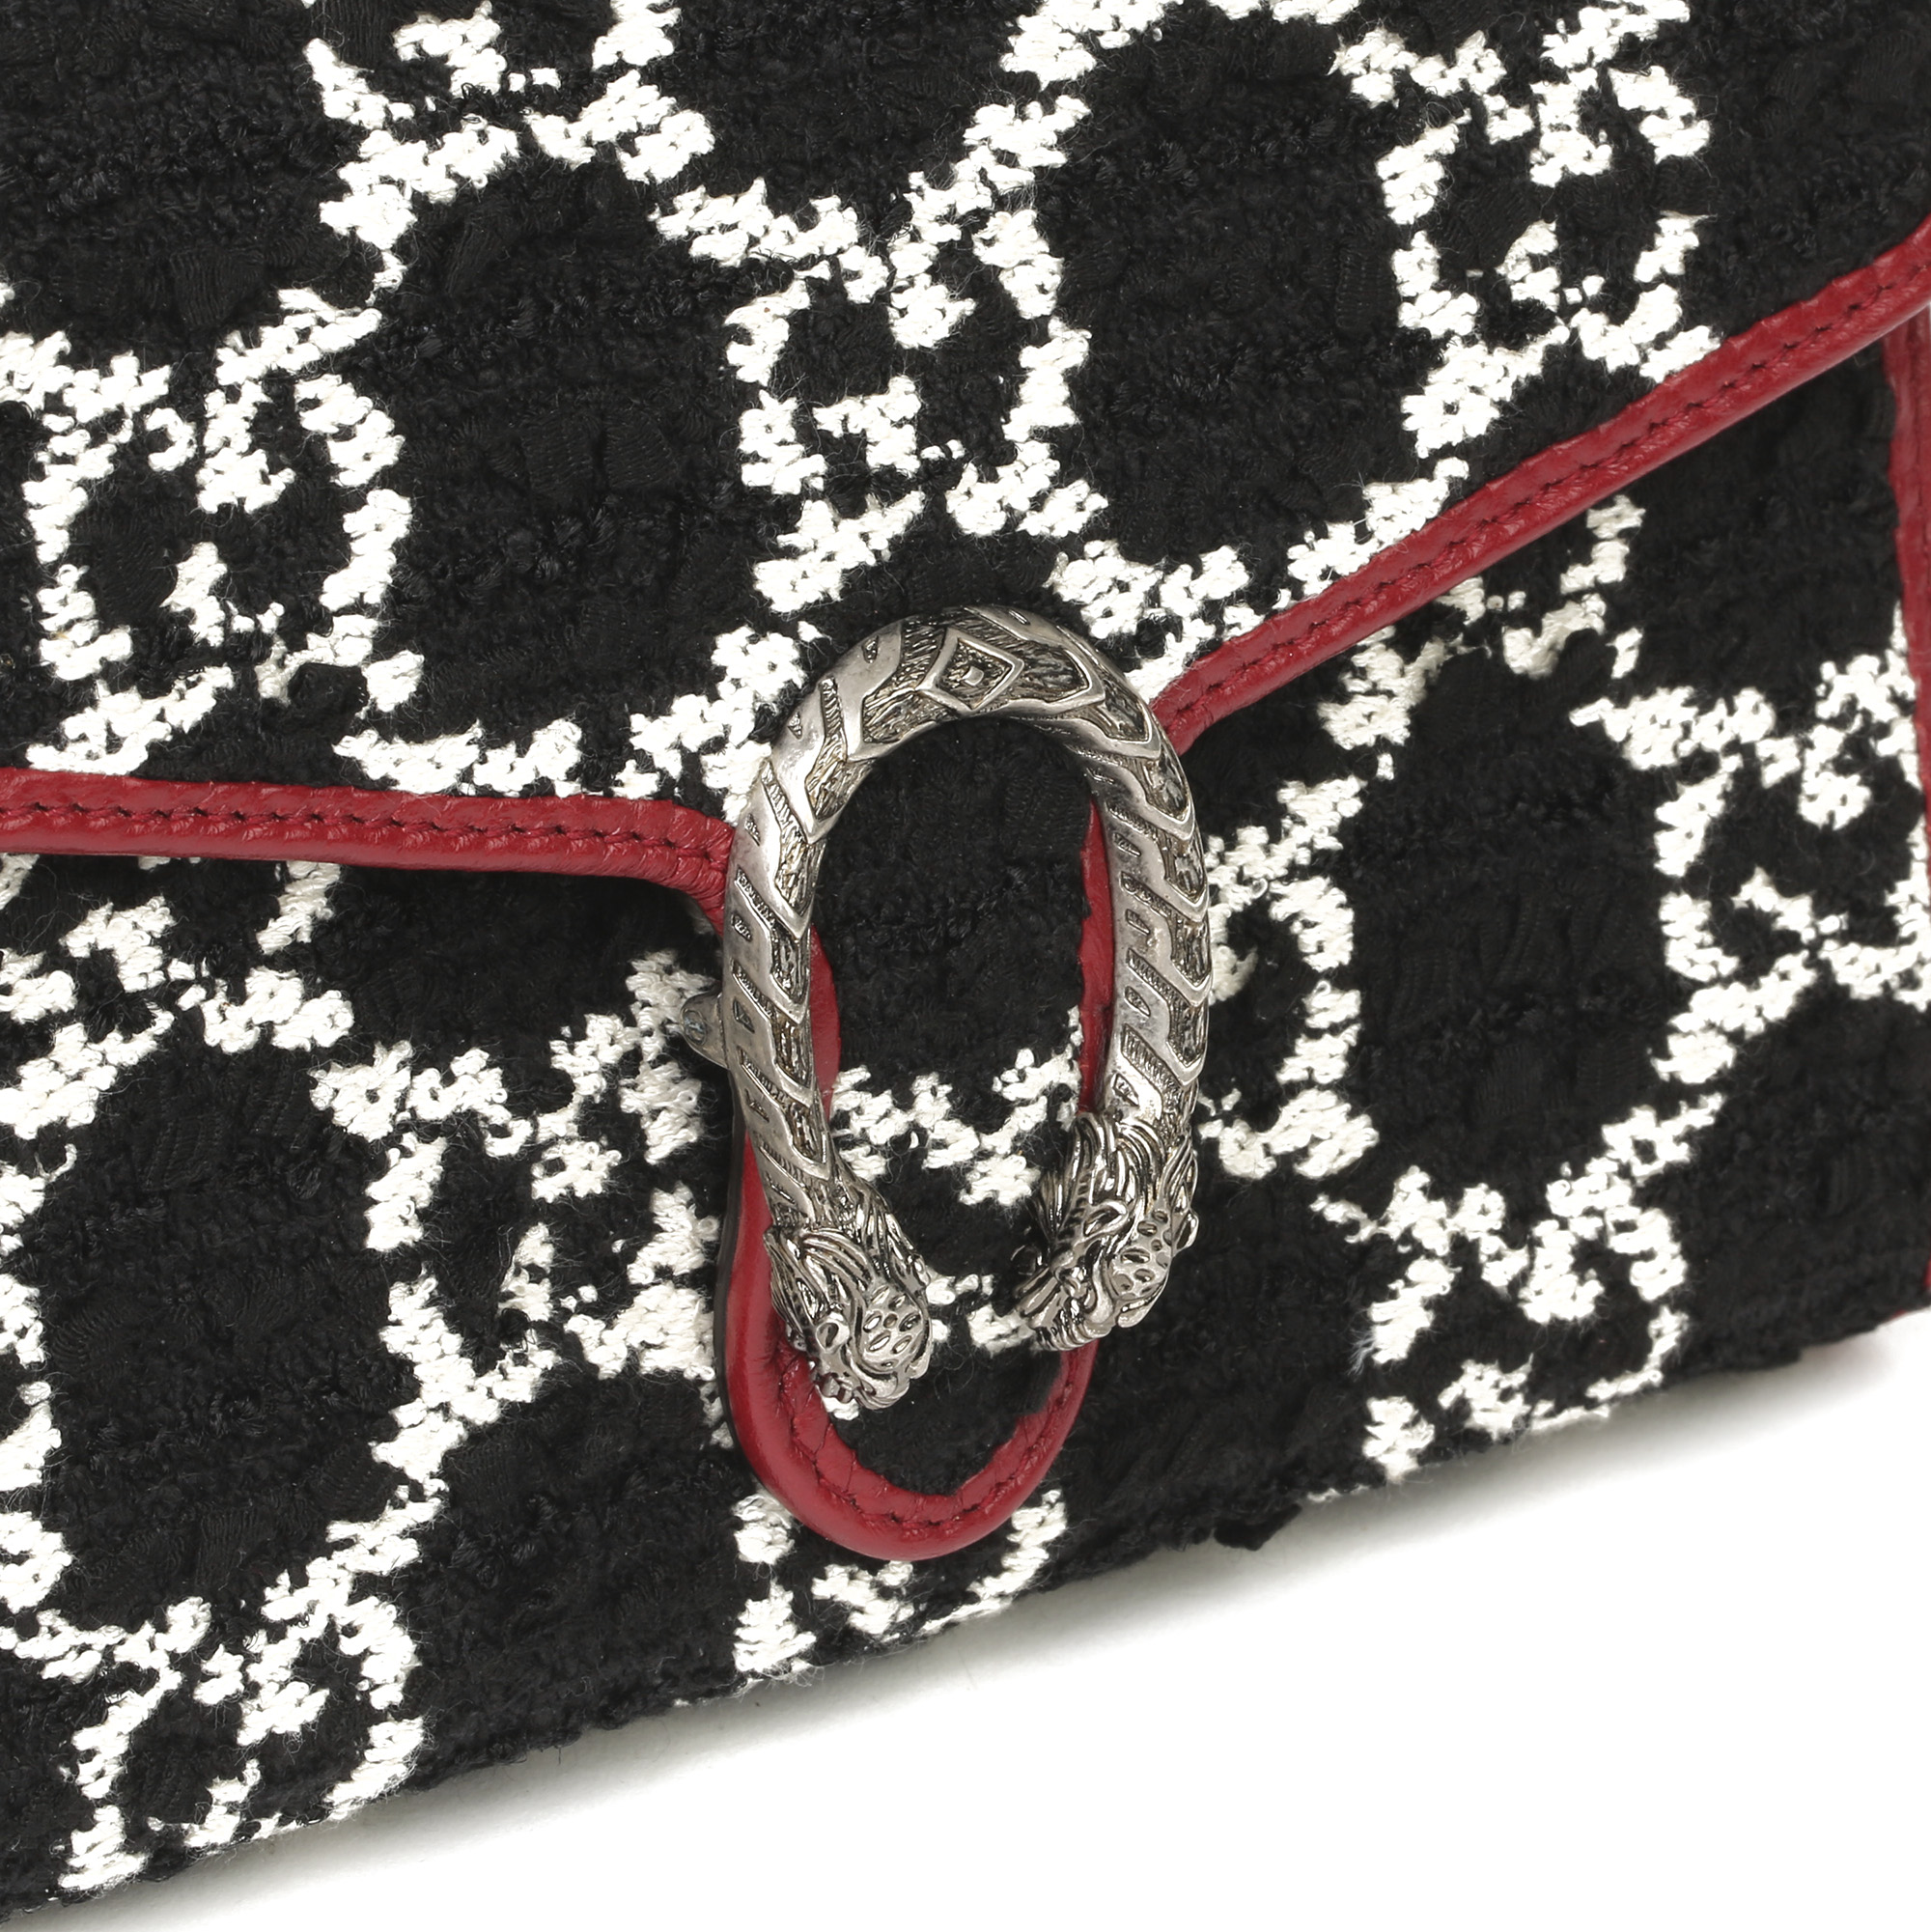 Gucci Red Calfskin & Black, White GG Tweed Dionysus Wallet-on-Chain - Image 7 of 11